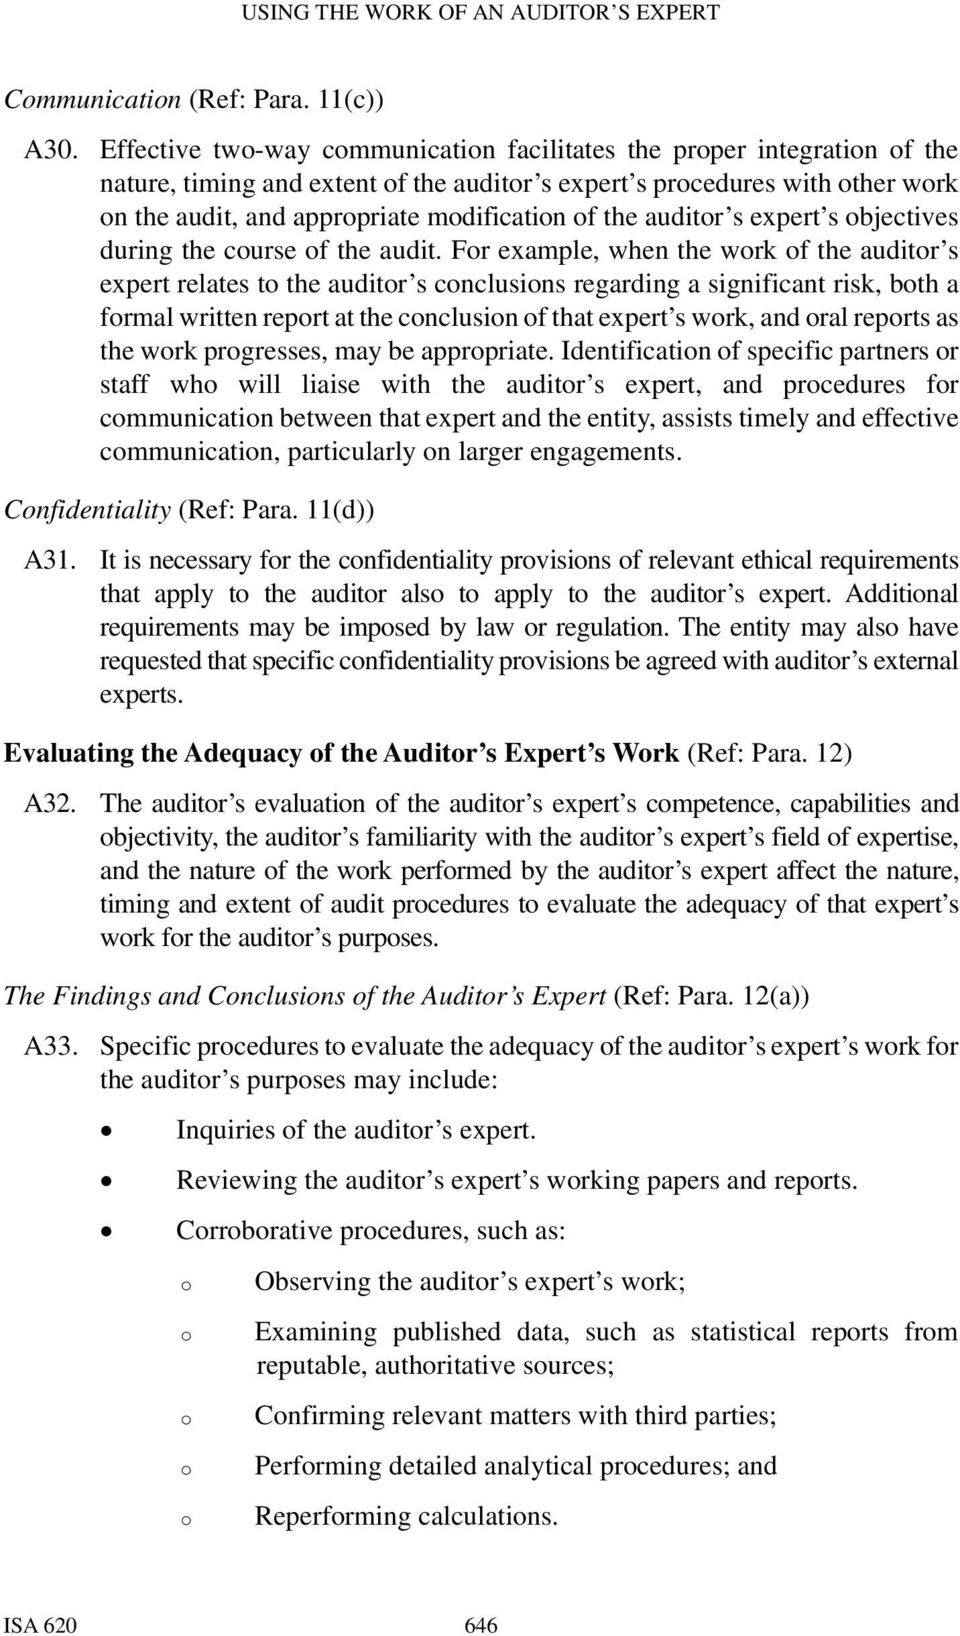 the auditor s expert s objectives during the course of the audit.